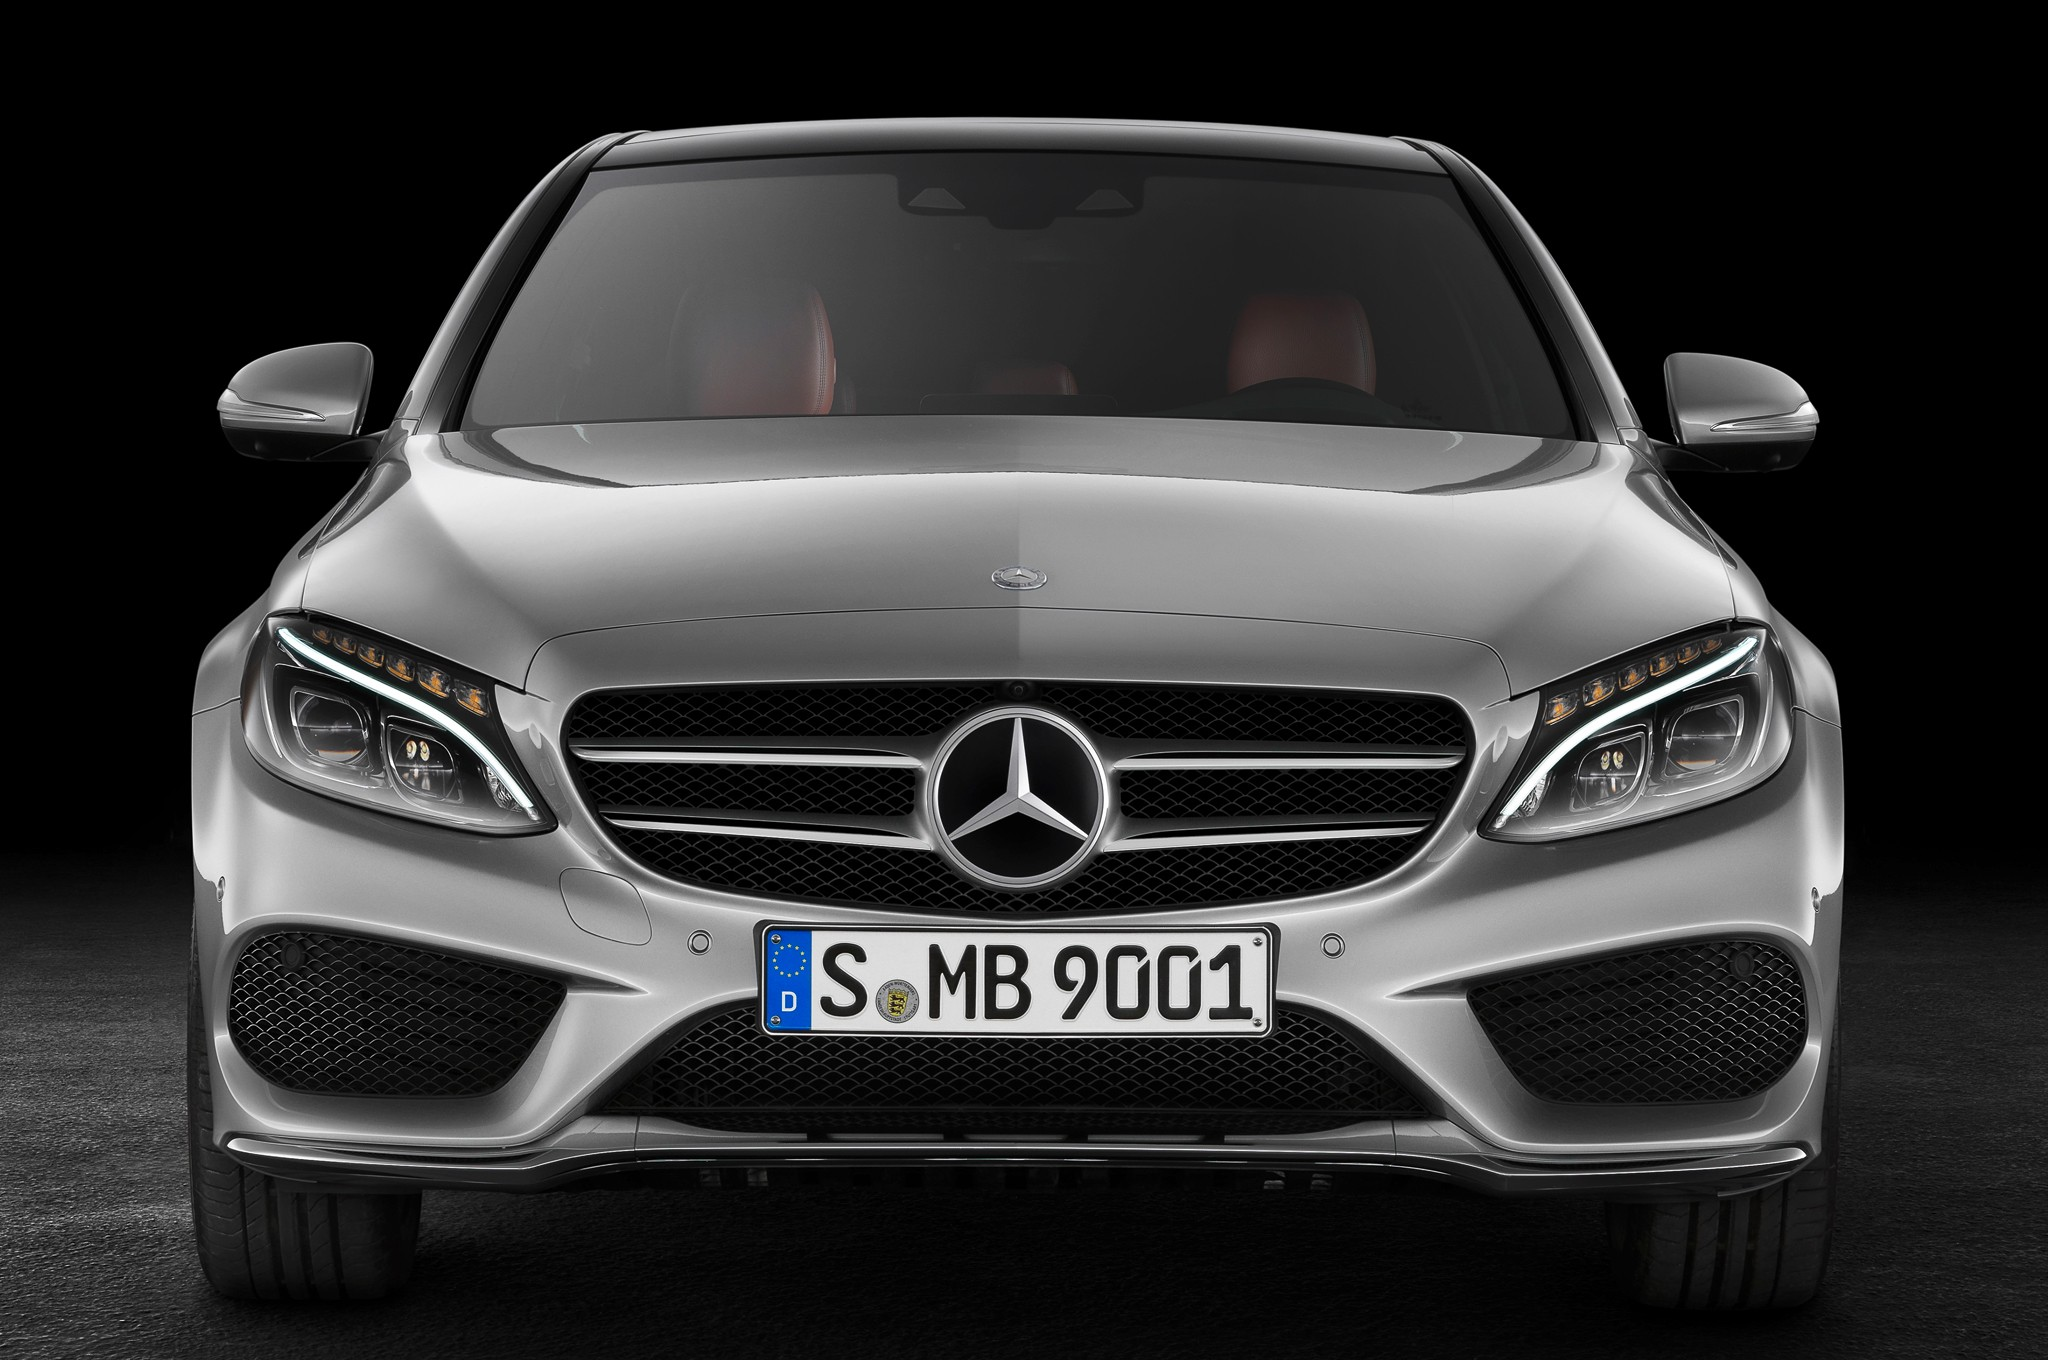 Mercedes benz c class c220 cdi diesel launched price for Mercedes benz c class horsepower